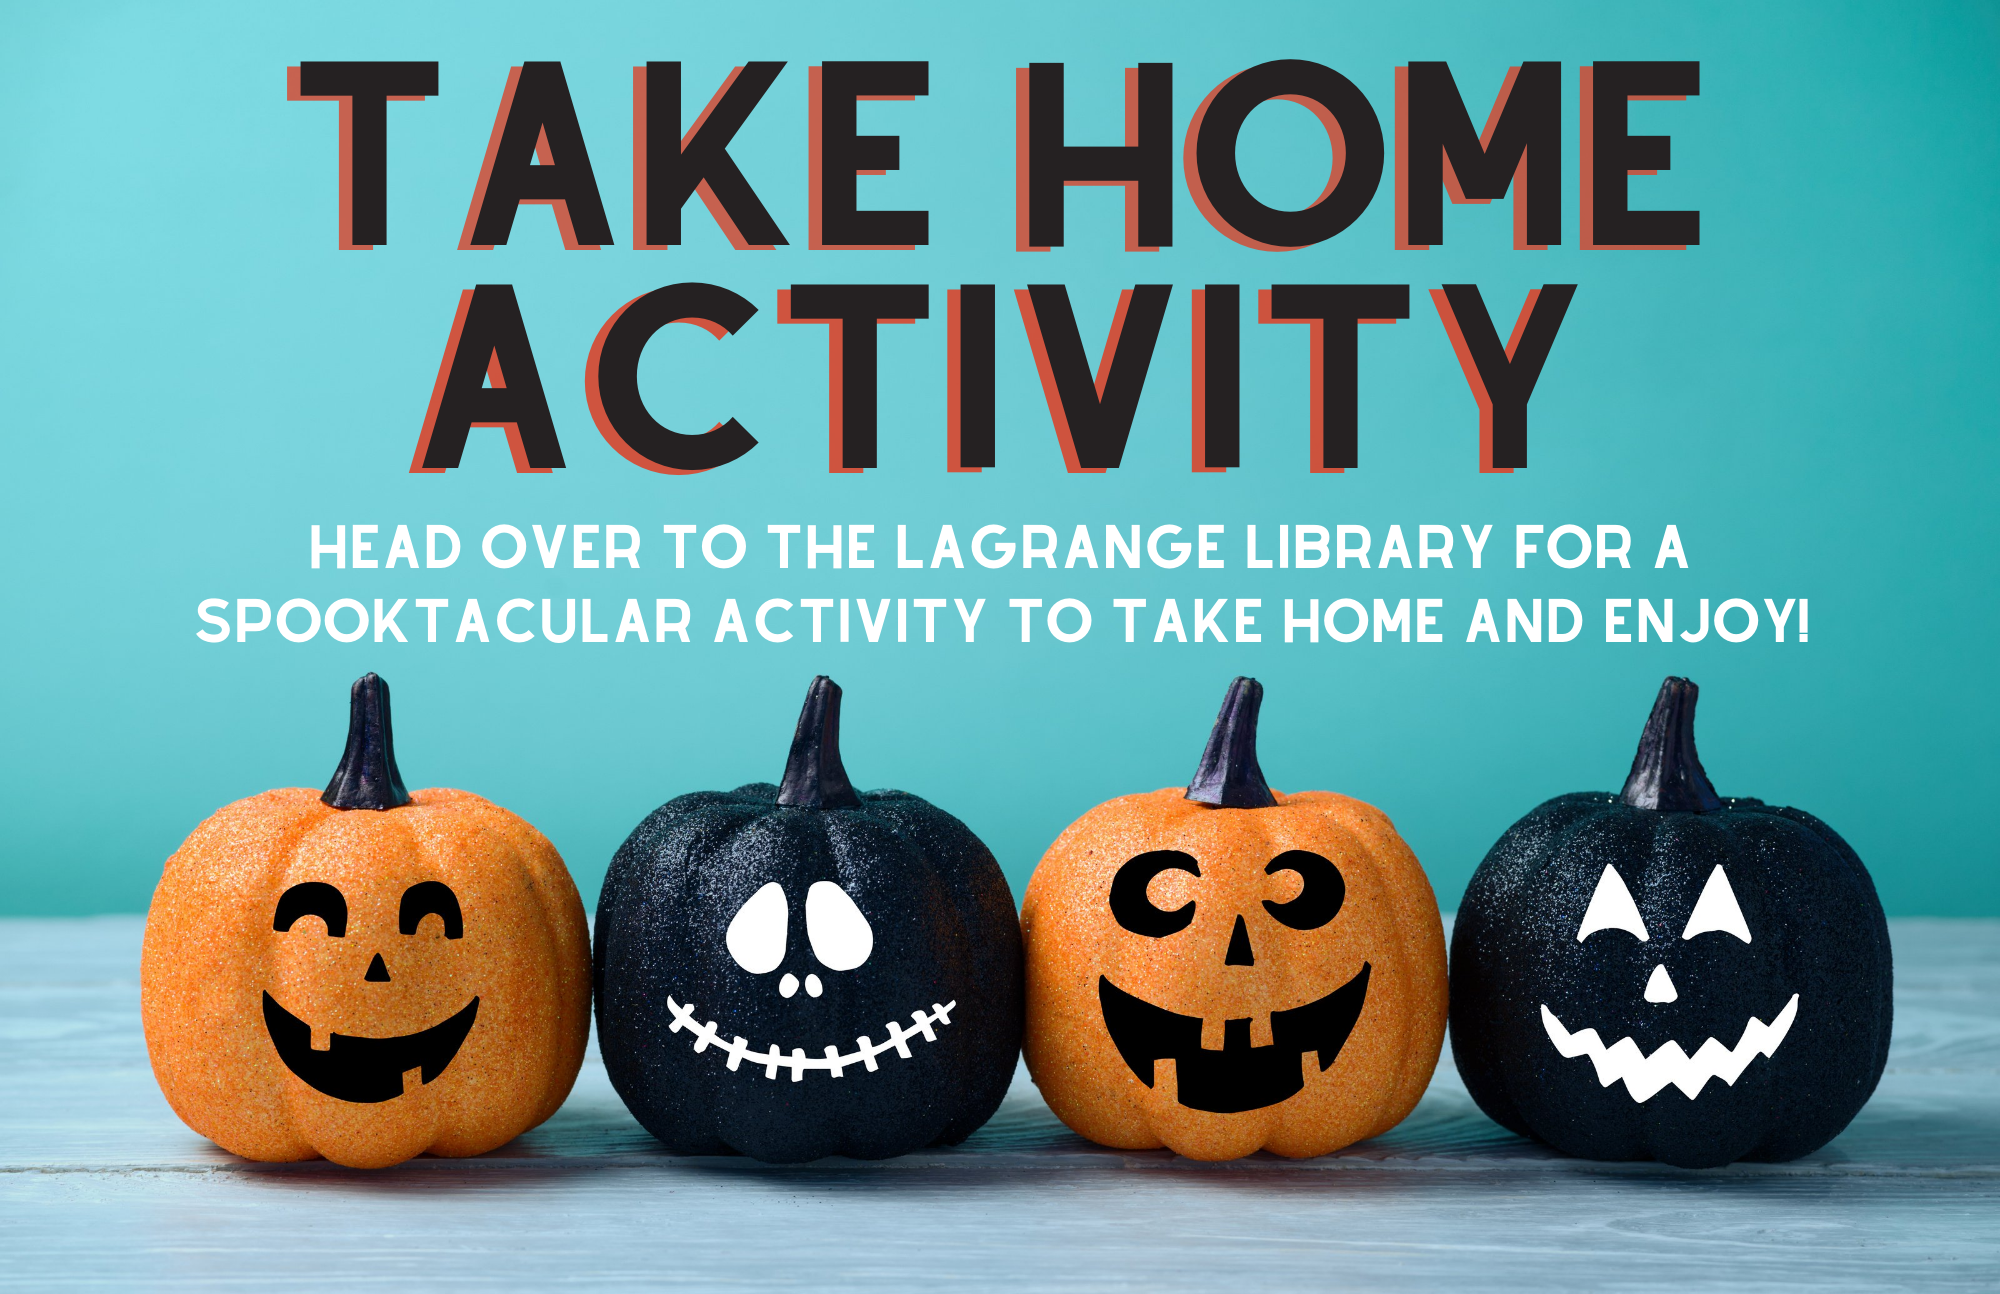 Stop by the LaGrange Memorial Library on October 12 and grab a fun Halloween craft to take and make! While supplies last.